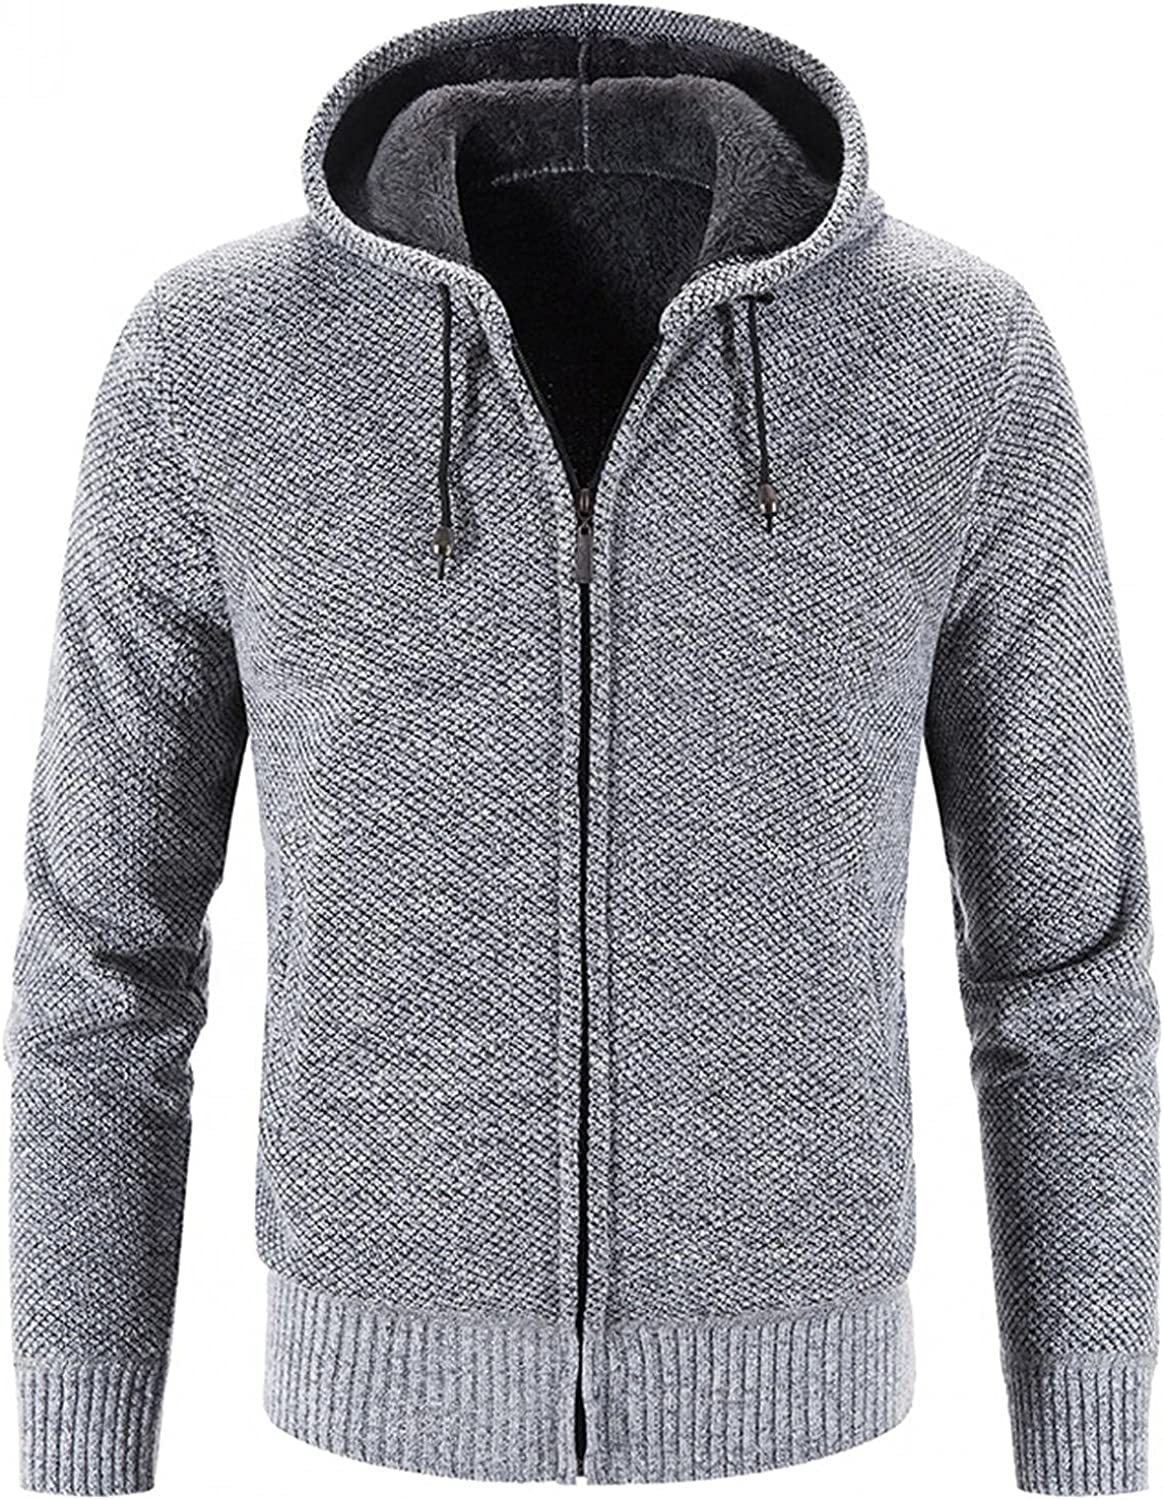 LEIYAN Mens Hooded Sweater Cardigan Cable Knitted Zip Up Slim Fit Casual Thermal Hoodie Jackets Knitwear